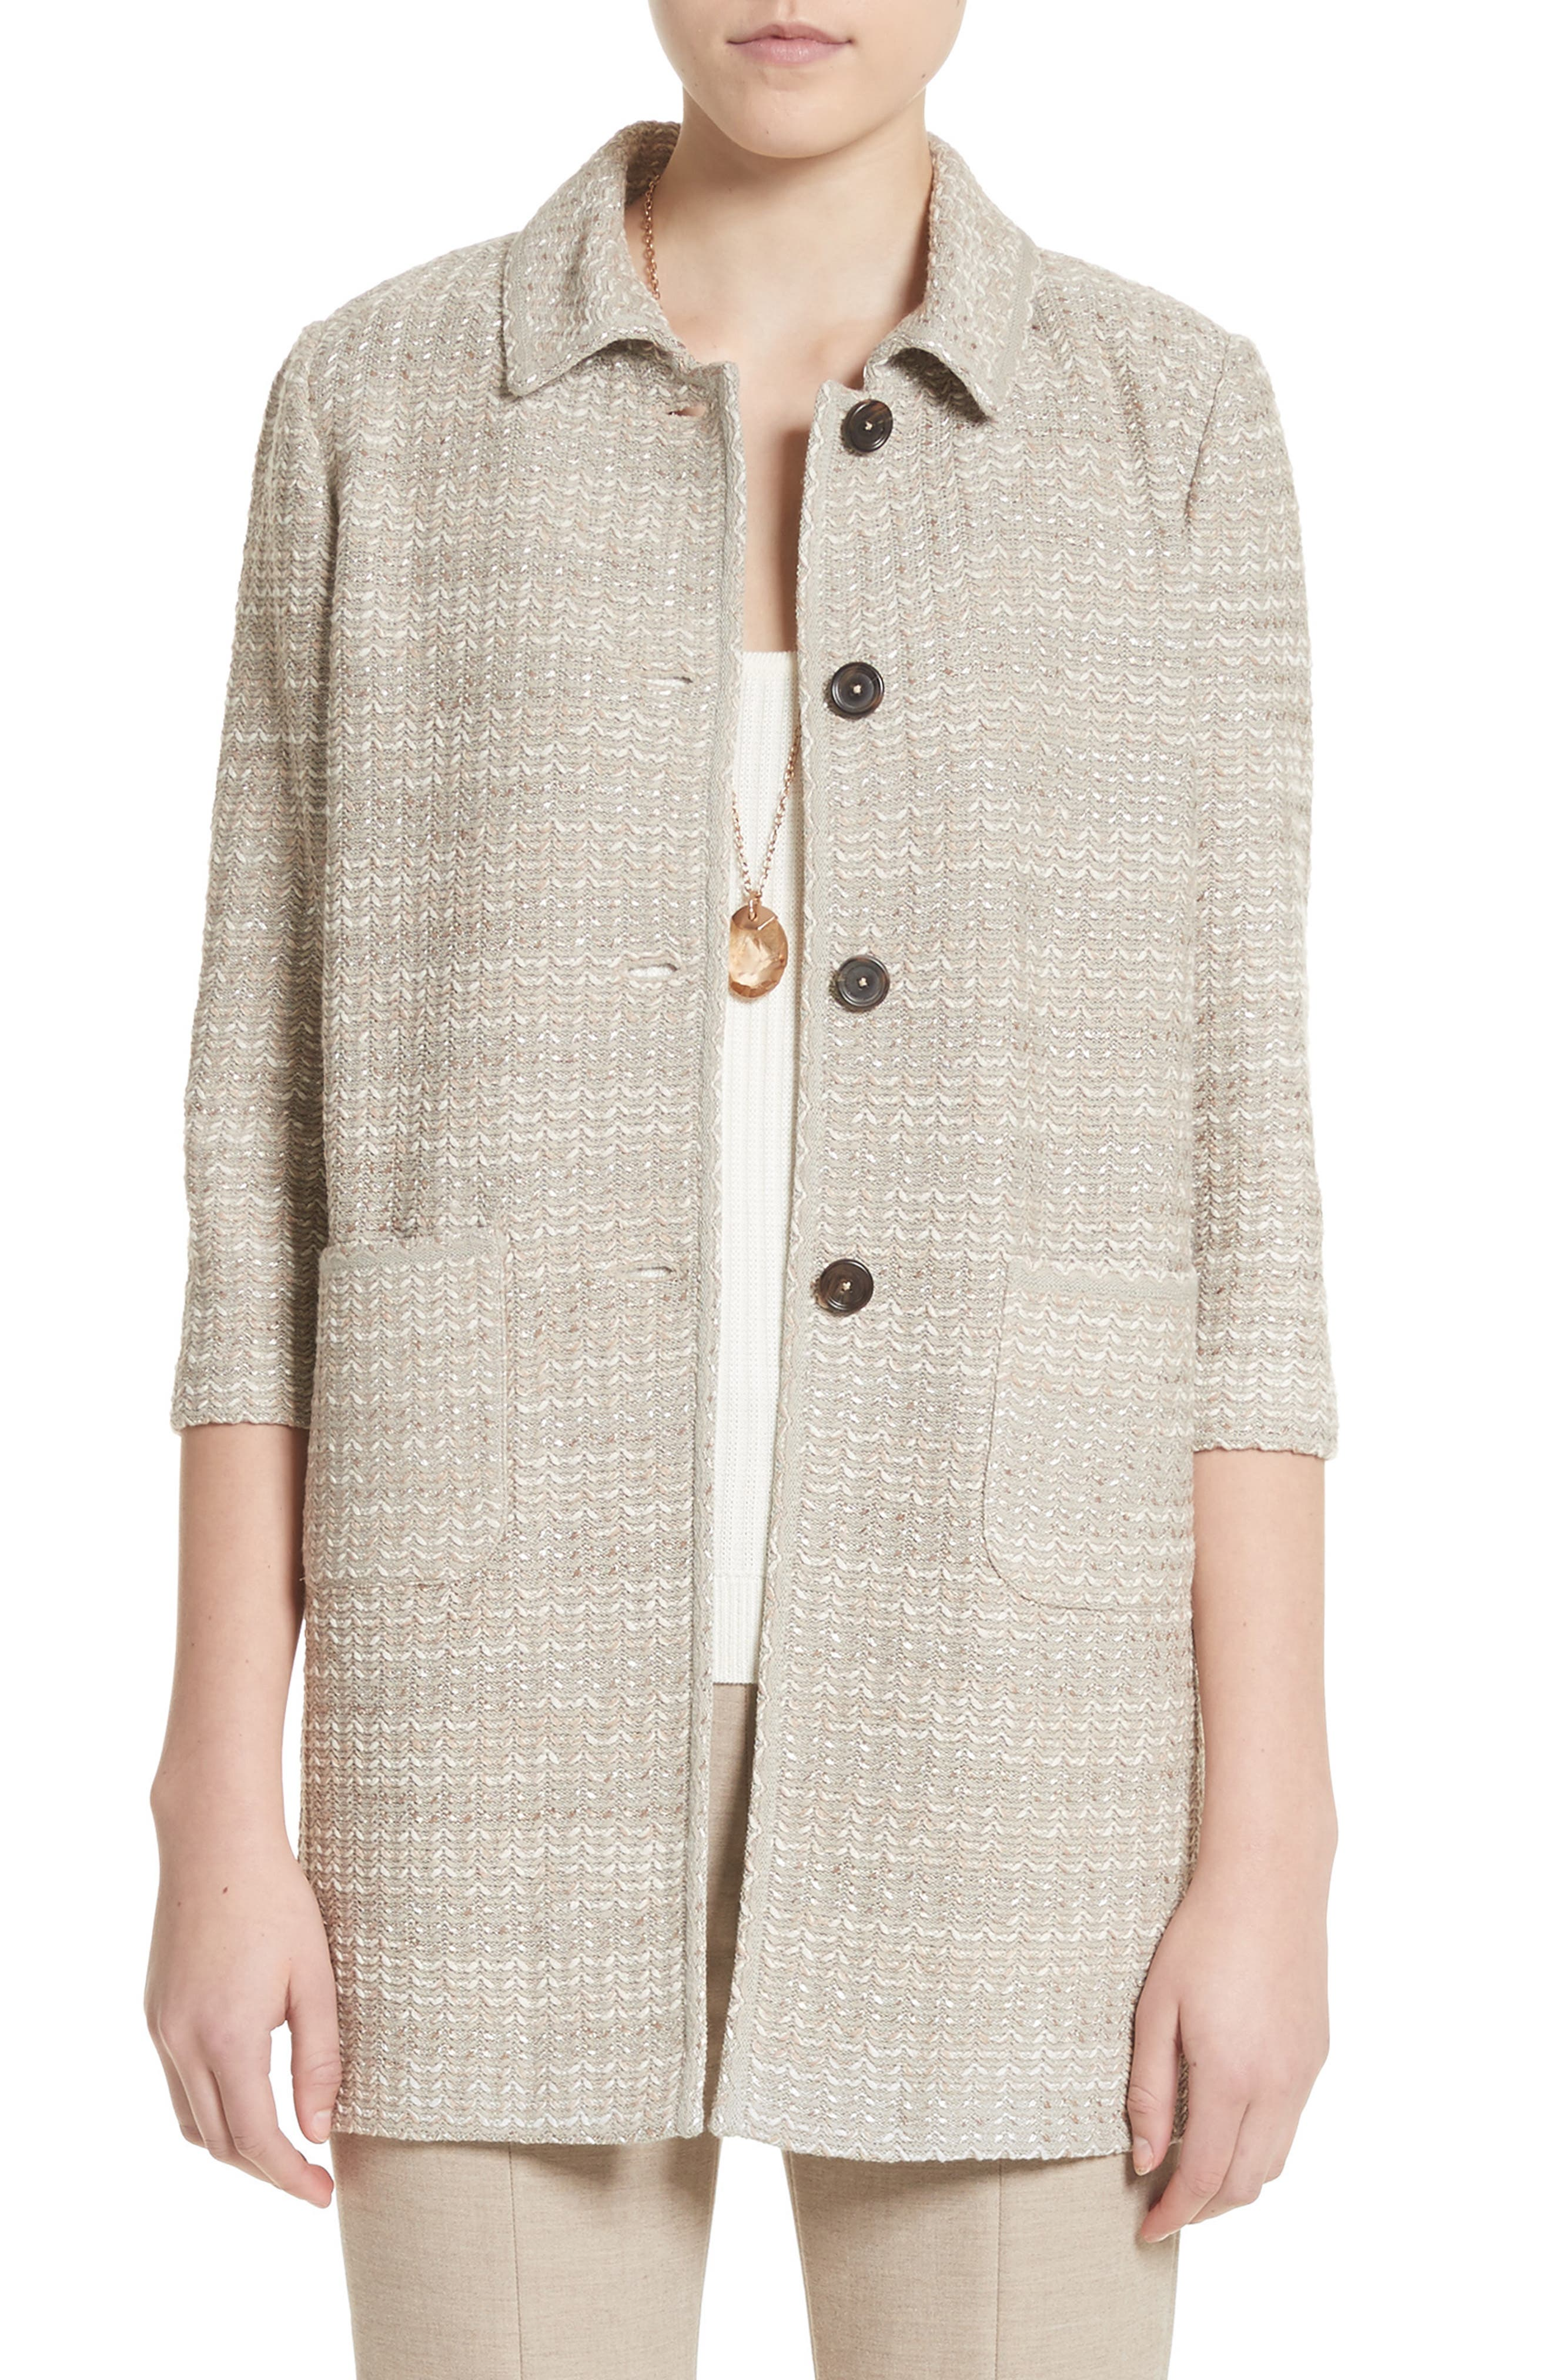 Chevron Knit Shantung Jacket,                         Main,                         color, Taupe Multi